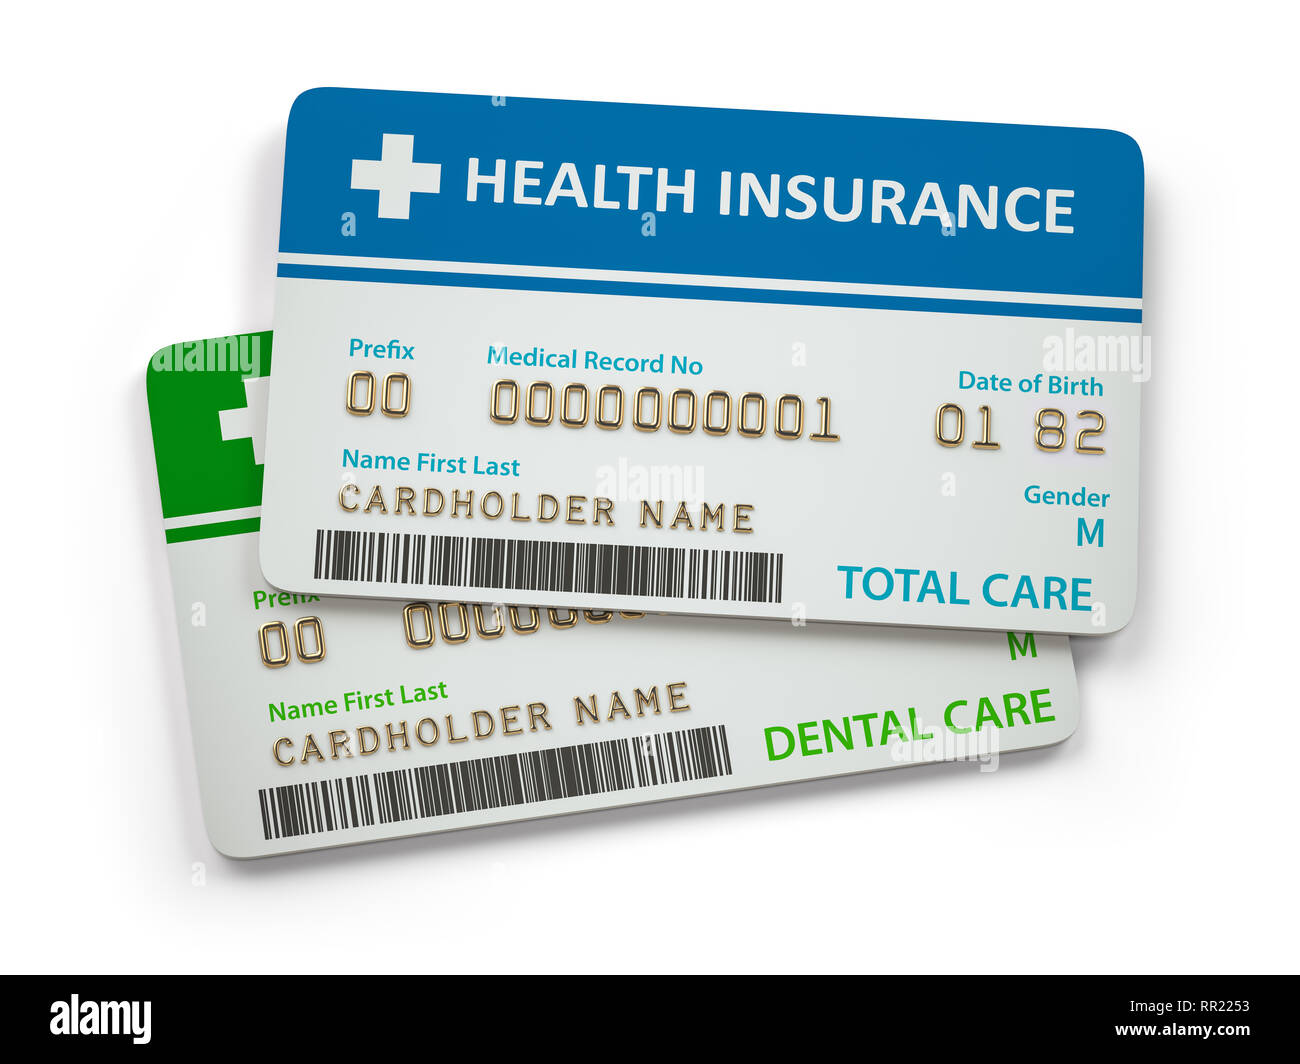 Health Insurance cards total and dental care  Isolated on white background. 3d illustration Stock Photo